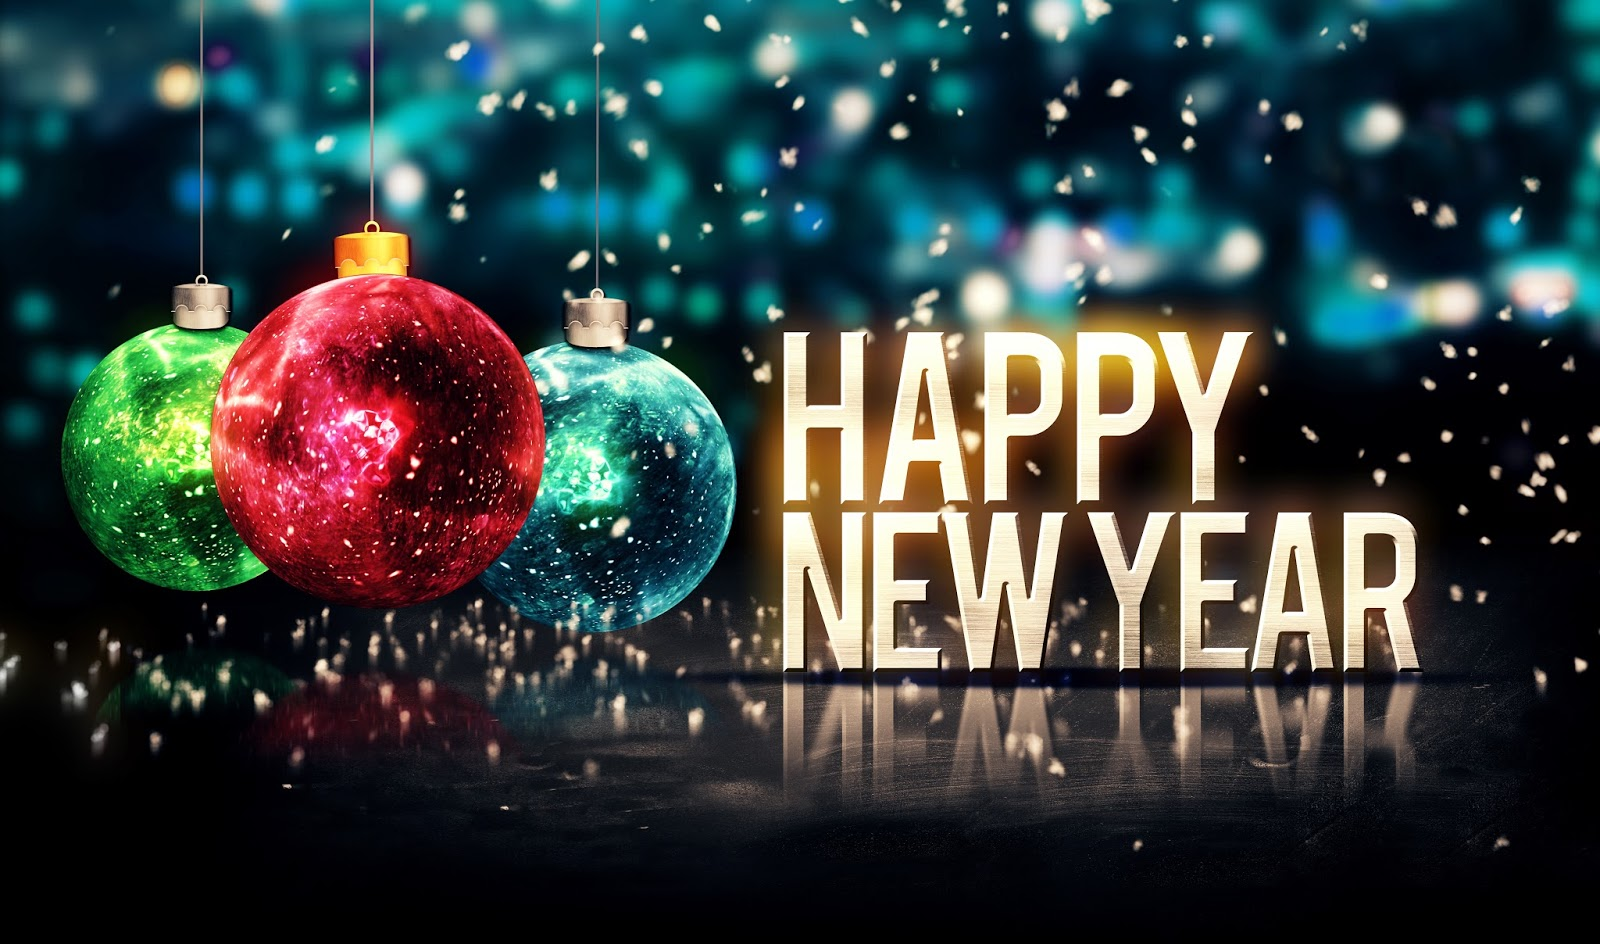 Oakville Gymnastics Club Acrobatic Gymnastics Team  Happy New Year  Happy New Year